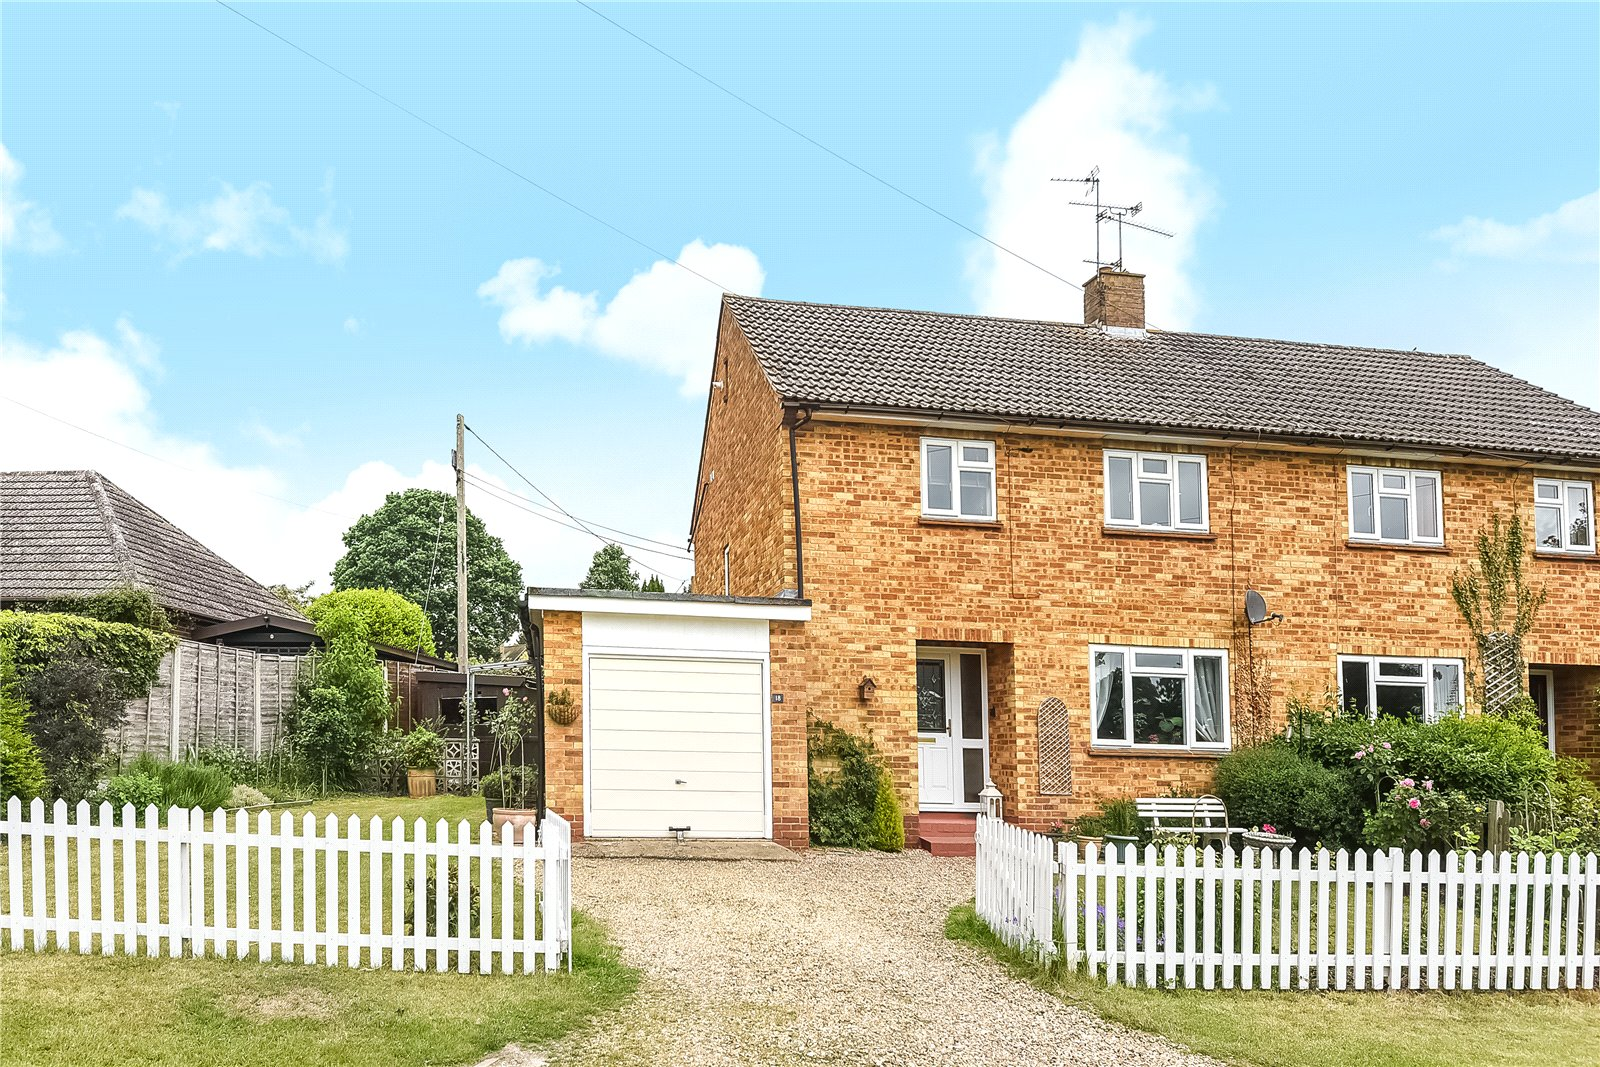 3 Bedrooms Semi Detached House for sale in Cricket Hill, Finchampstead, Wokingham, Berkshire, RG40